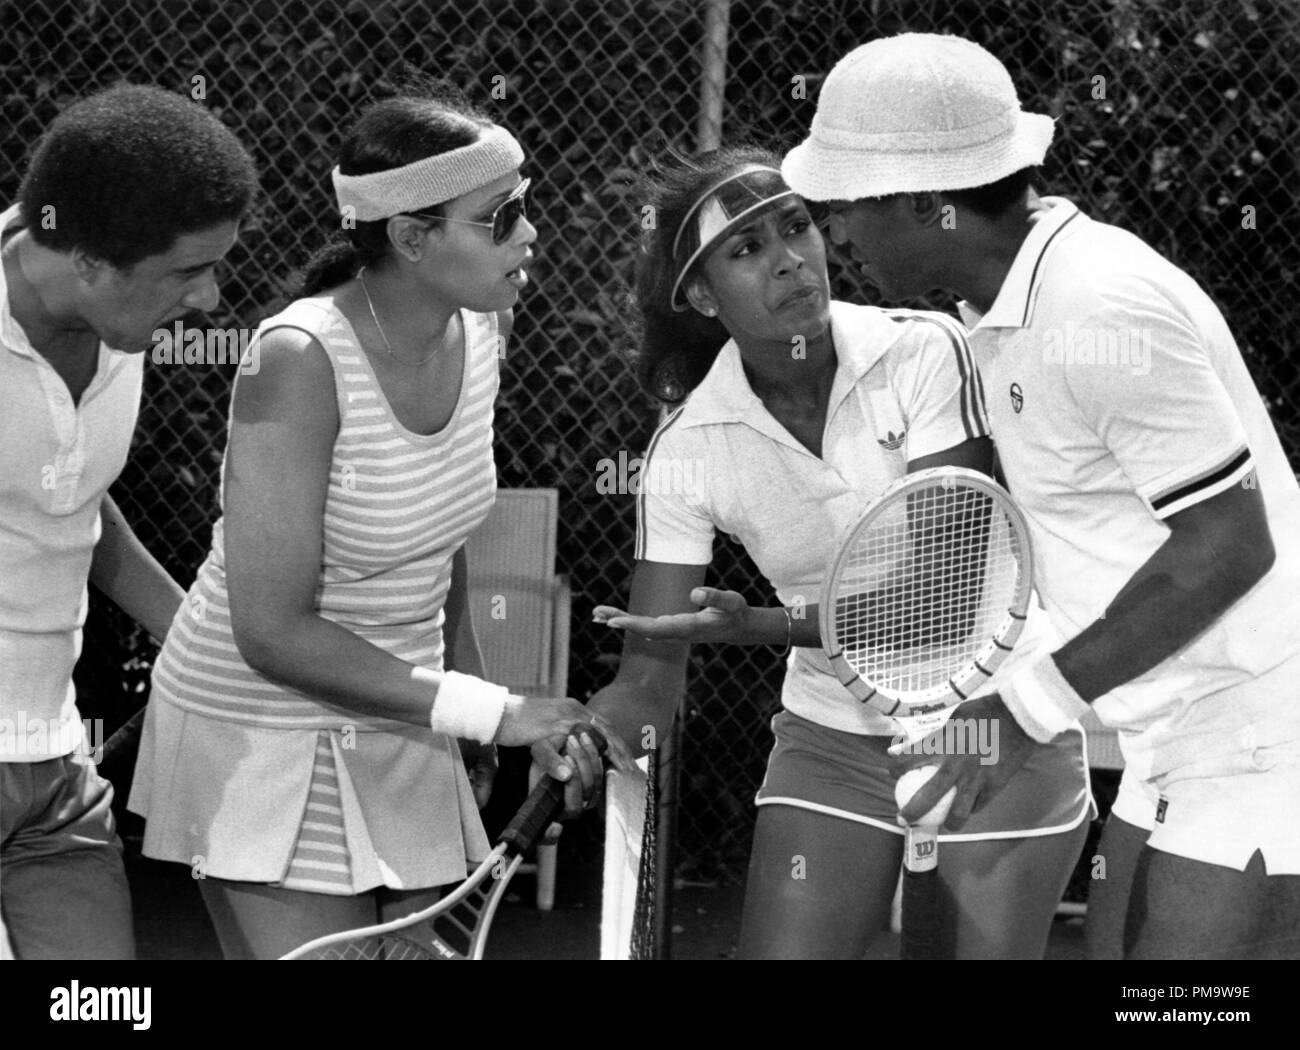 Studio Publicity Still from 'California Suite' Richard Pryor, Gloria Gifford, Sheila Frazier, Bill Cosby © 1978 Columbia Pictures  All Rights Reserved   File Reference # 31720231THA  For Editorial Use Only - Stock Image